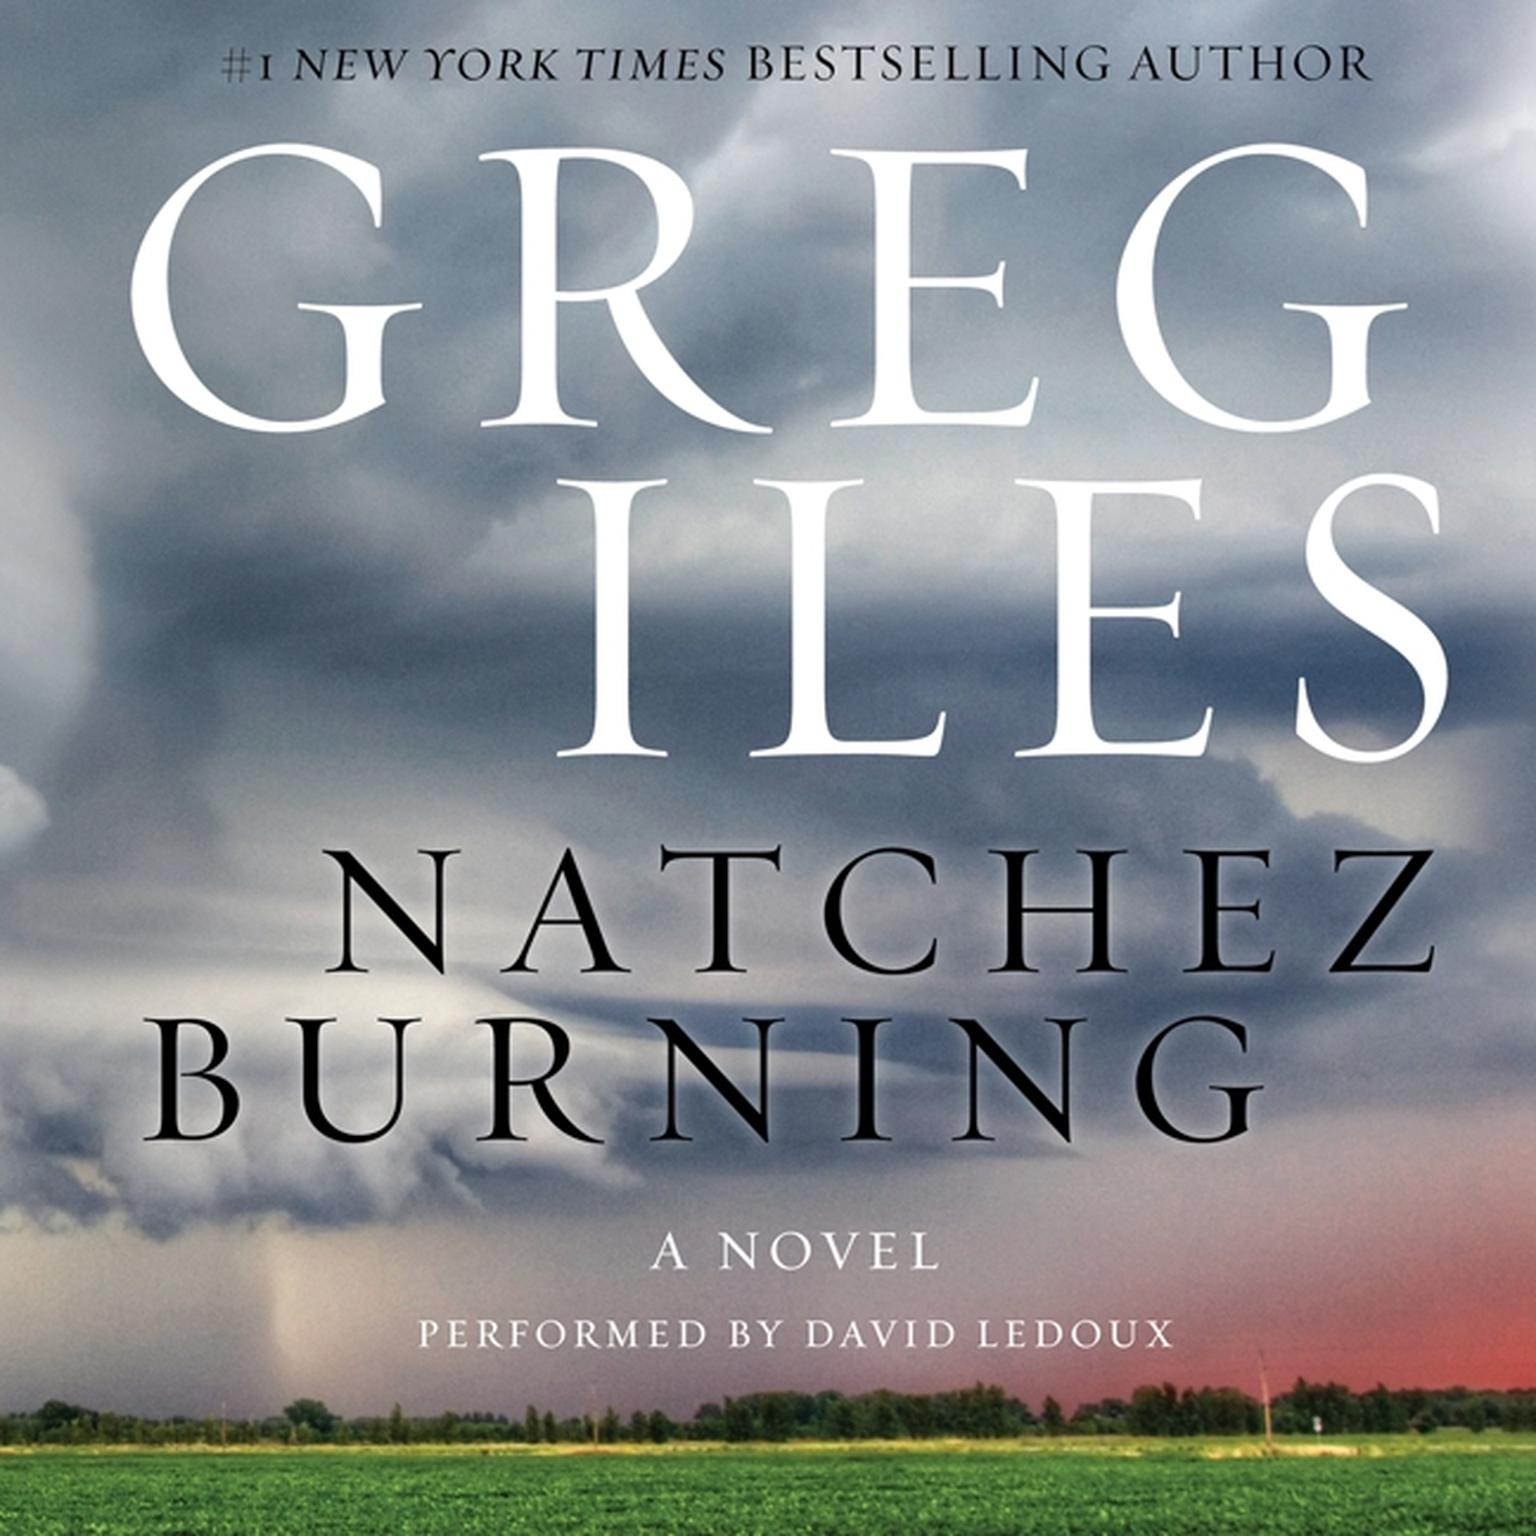 Printable Natchez Burning Audiobook Cover Art